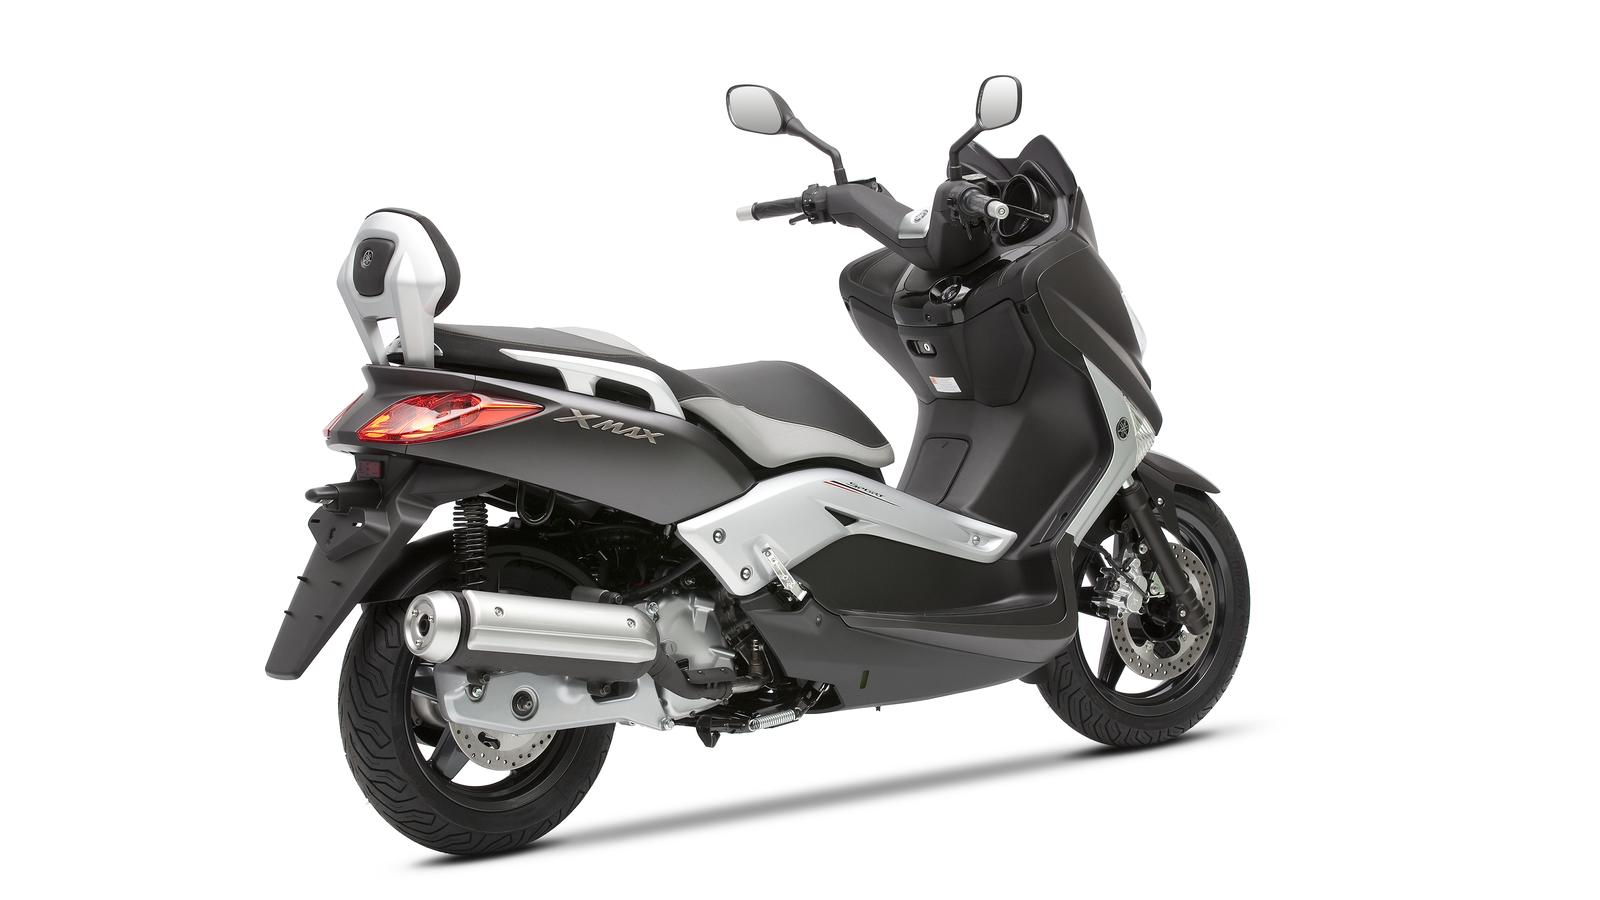 fiche revue technique yamaha x max 125 sport 2011. Black Bedroom Furniture Sets. Home Design Ideas